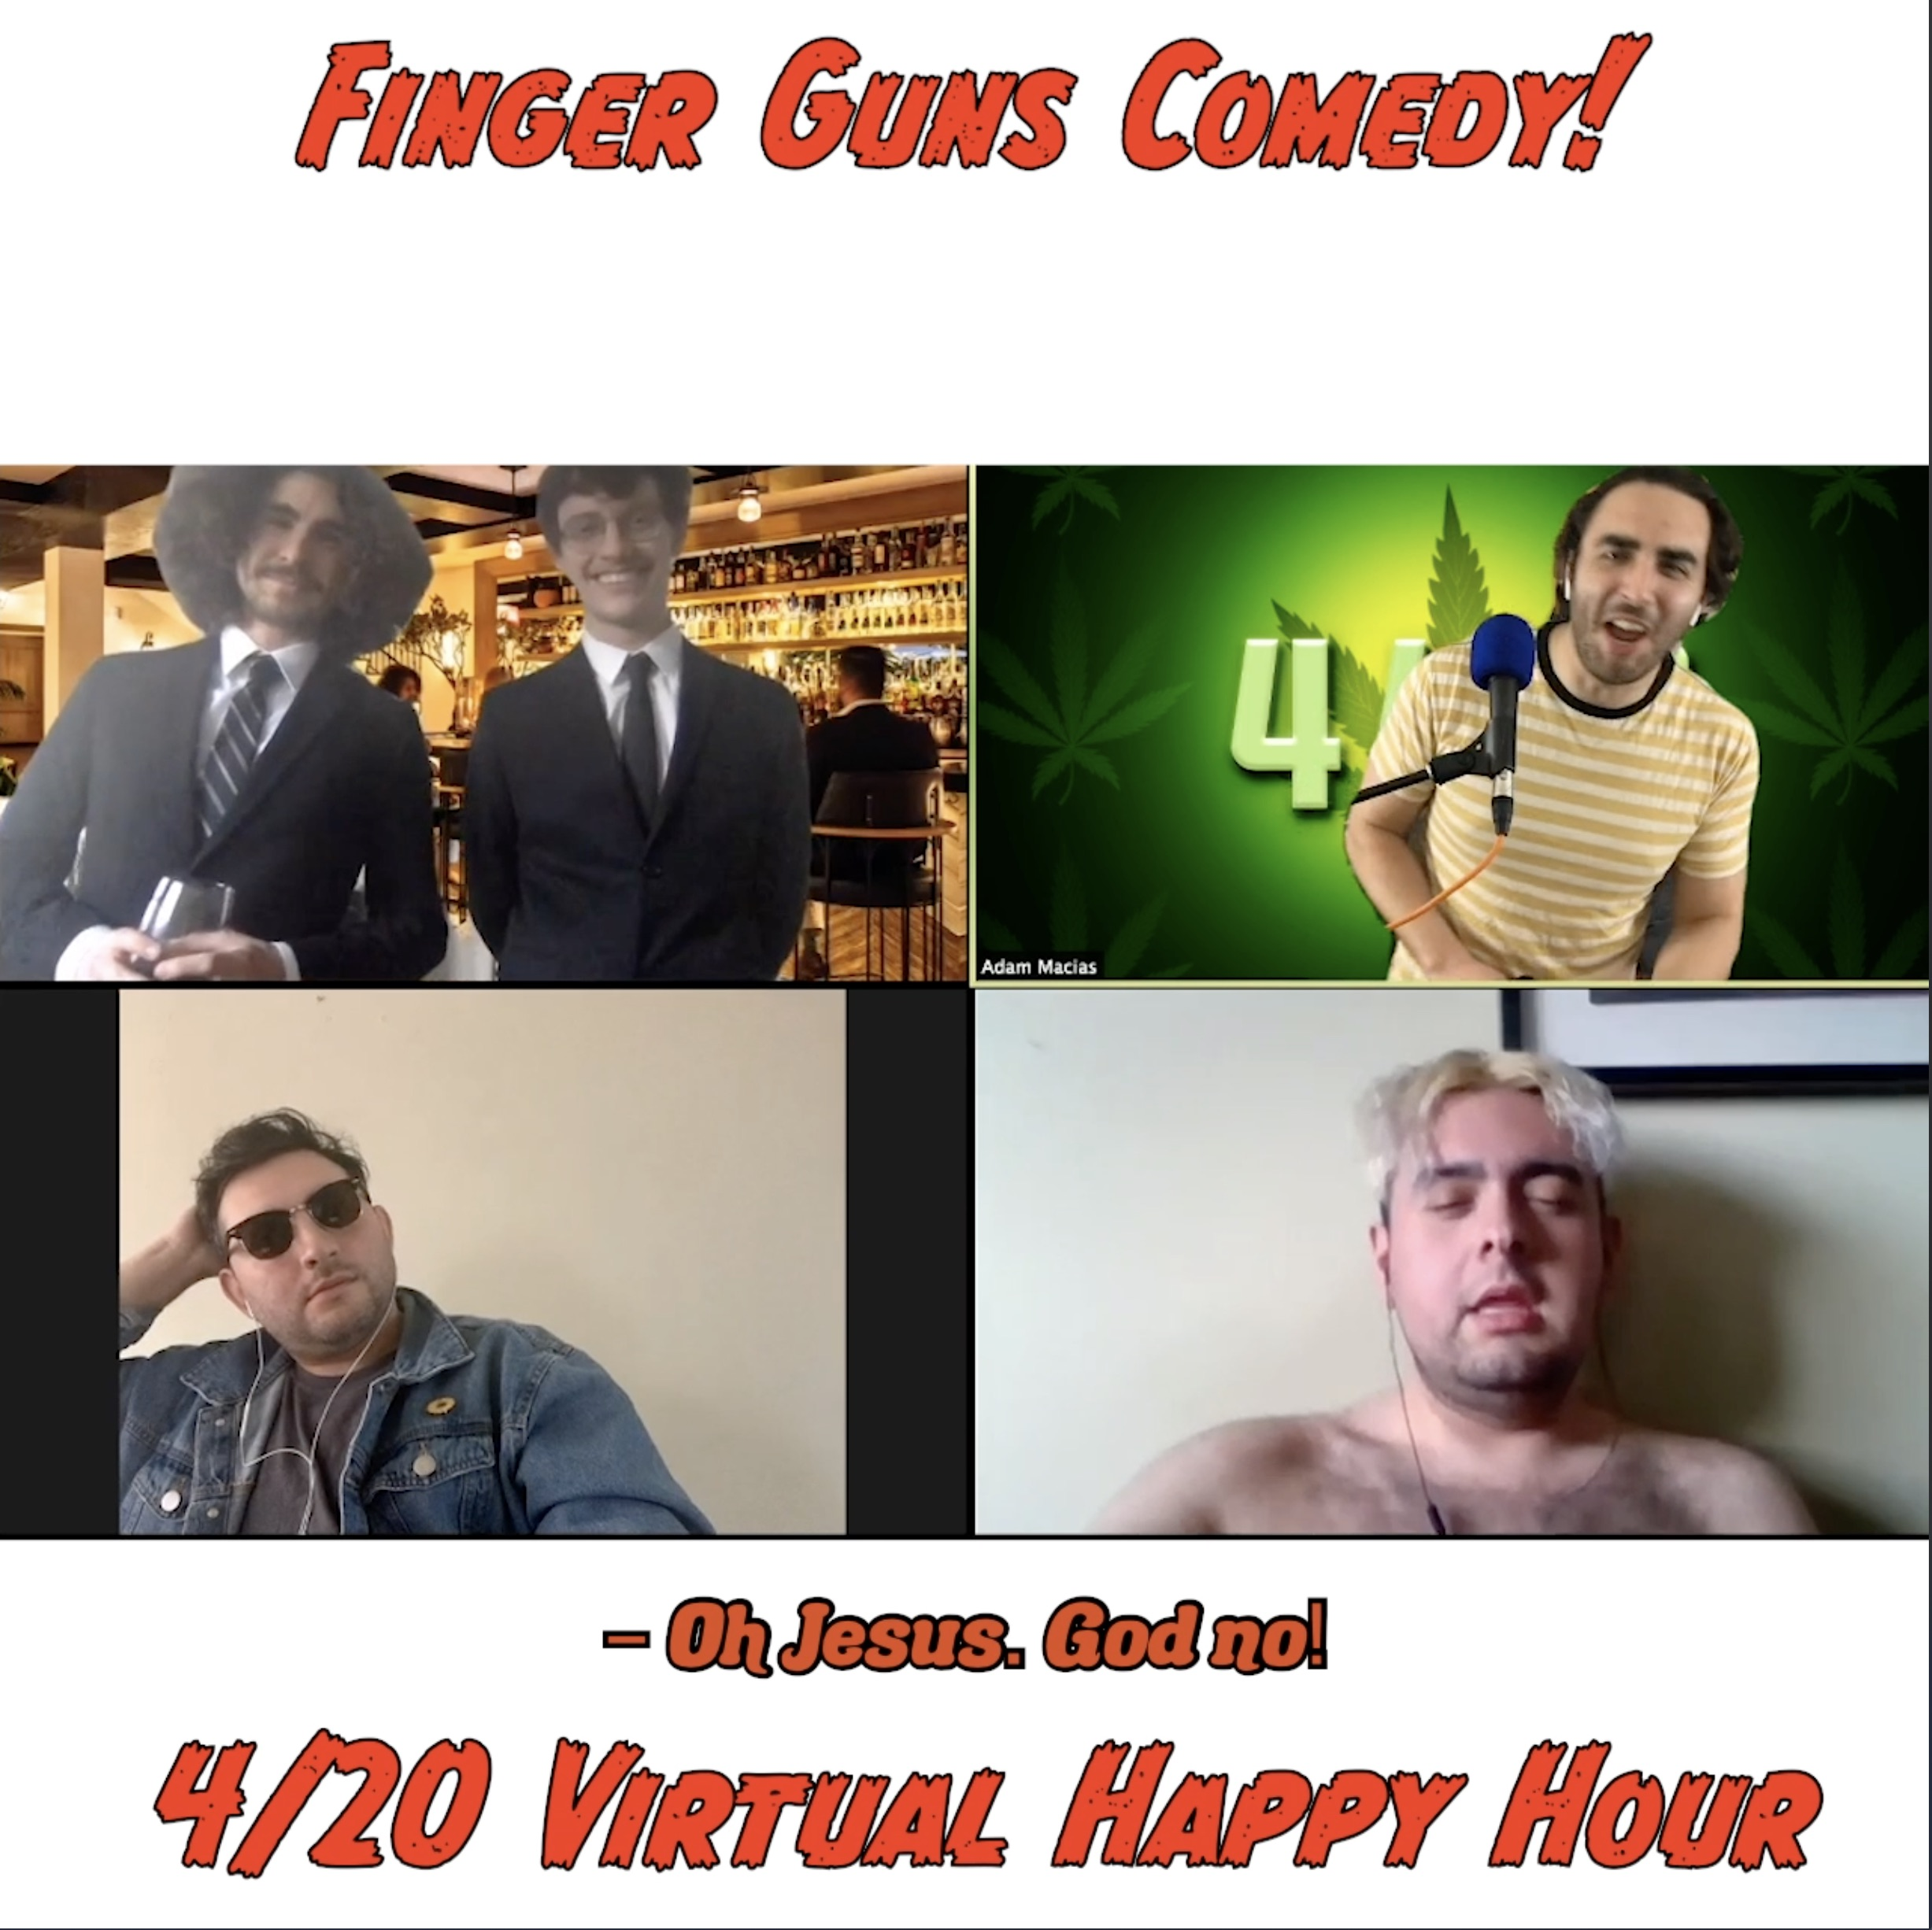 Ep 117: 420 Virtual Happy Hour - With Pete Byrnes, Eric Pastore, and Ezra Parter!